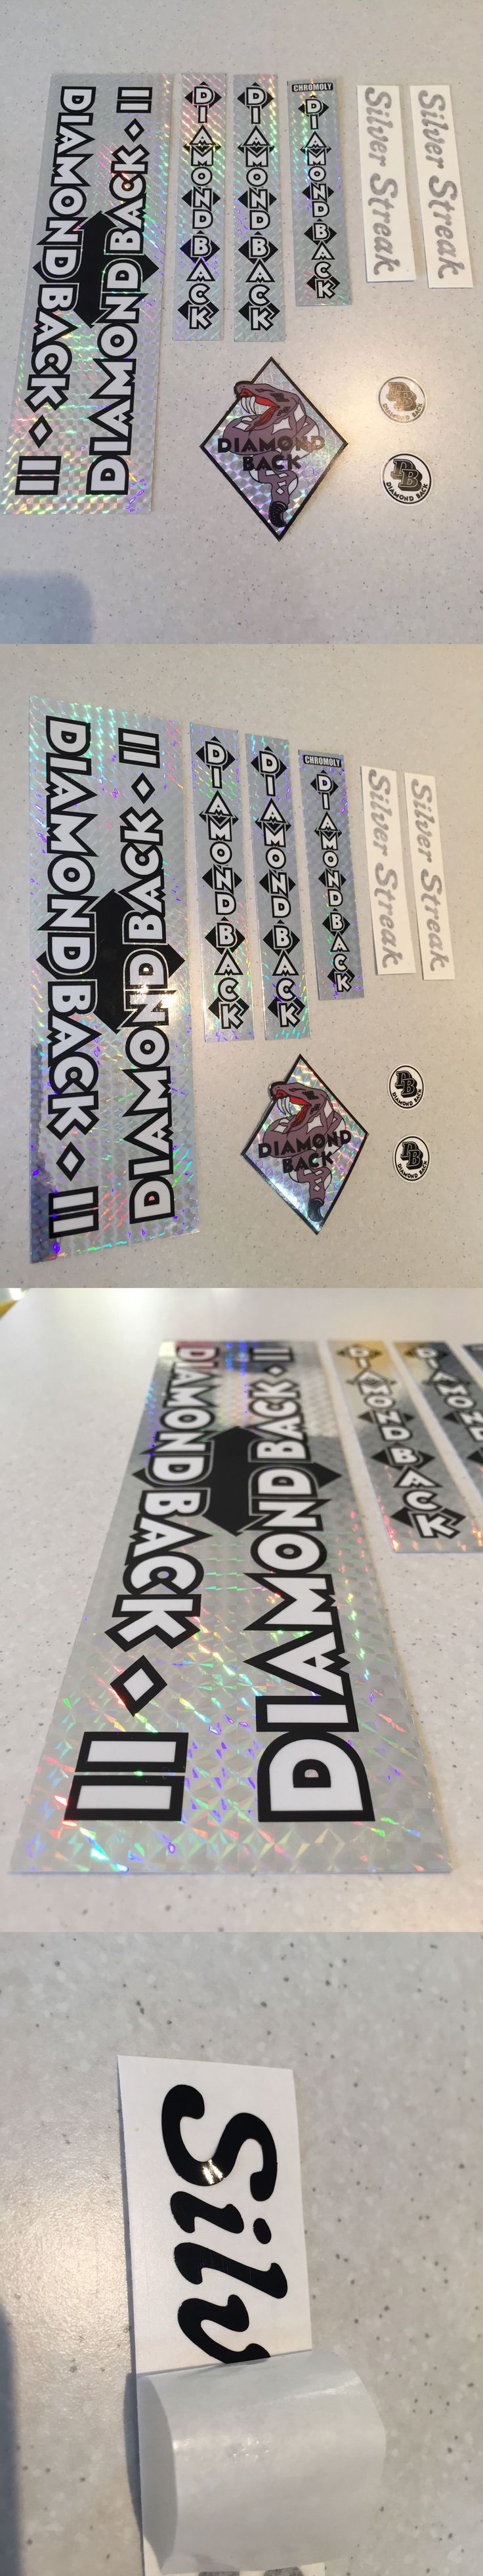 Vintage Bicycle Parts 56197: Diamondback Silver Streak Decals Sticker Set Suit Your Old School Bmx Black -> BUY IT NOW ONLY: $49.0 on eBay!